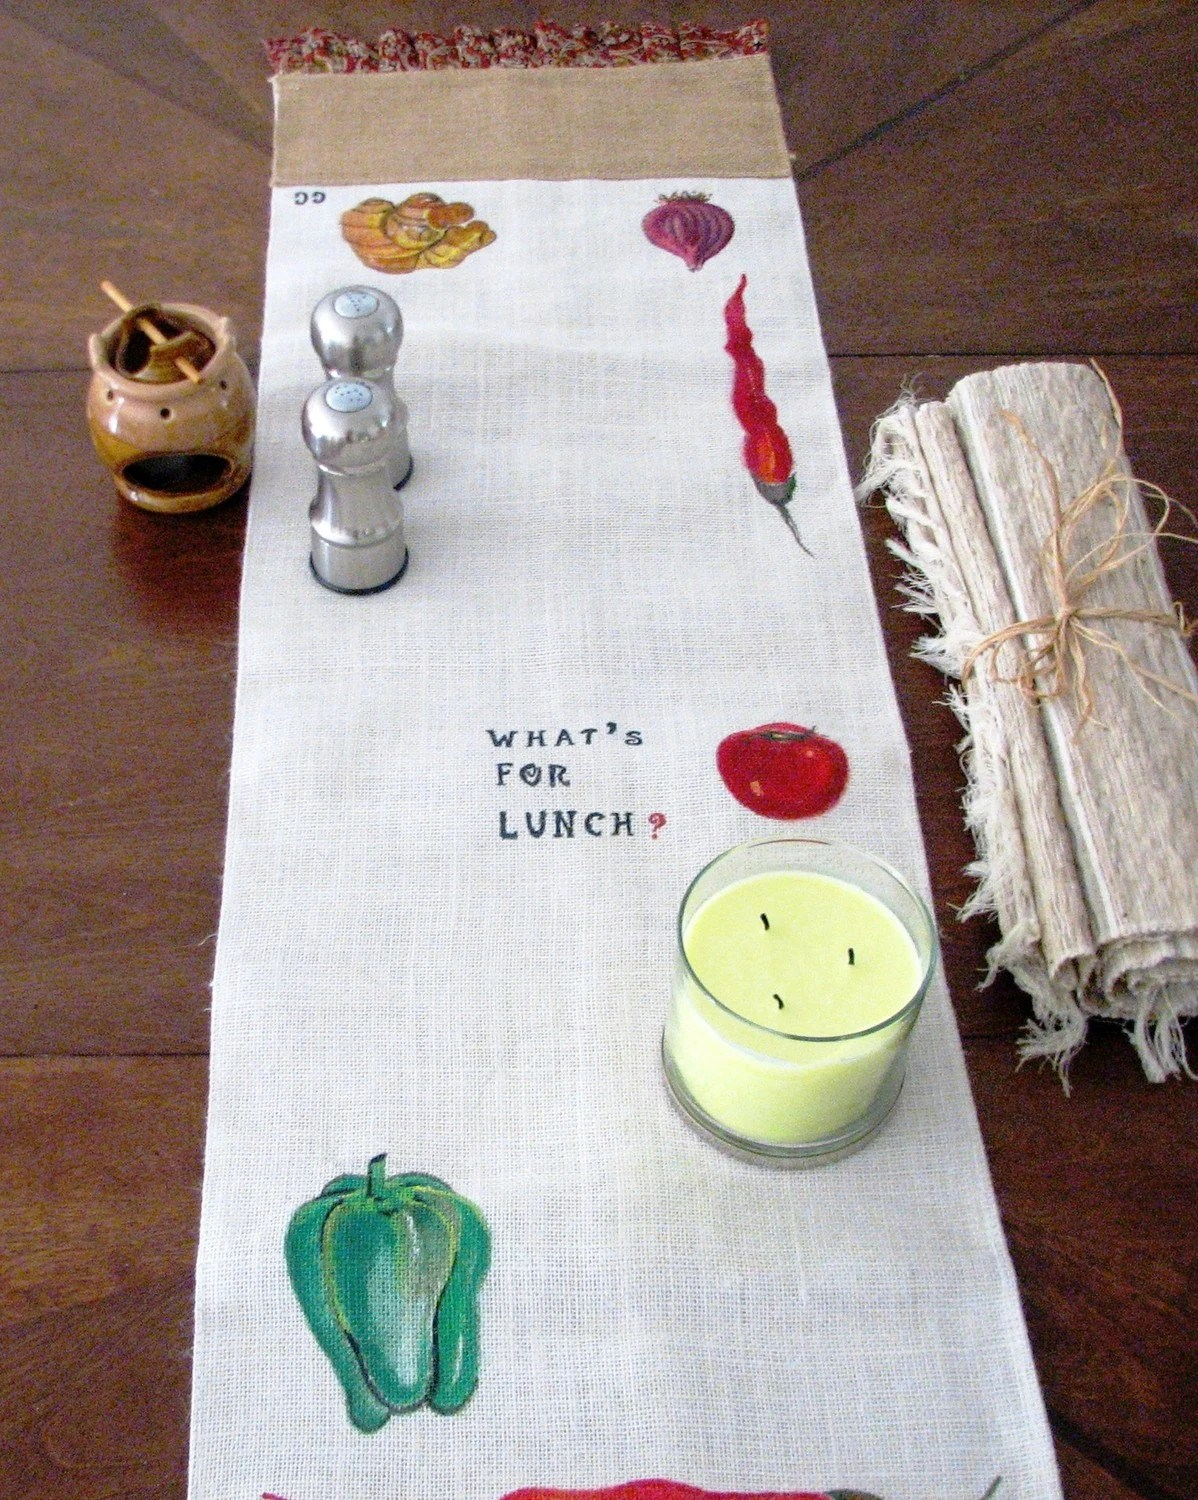 Handpainted Jute/Burlap Table Runner Dining Decor Ecofriendly Art Veggies What's For Lunch